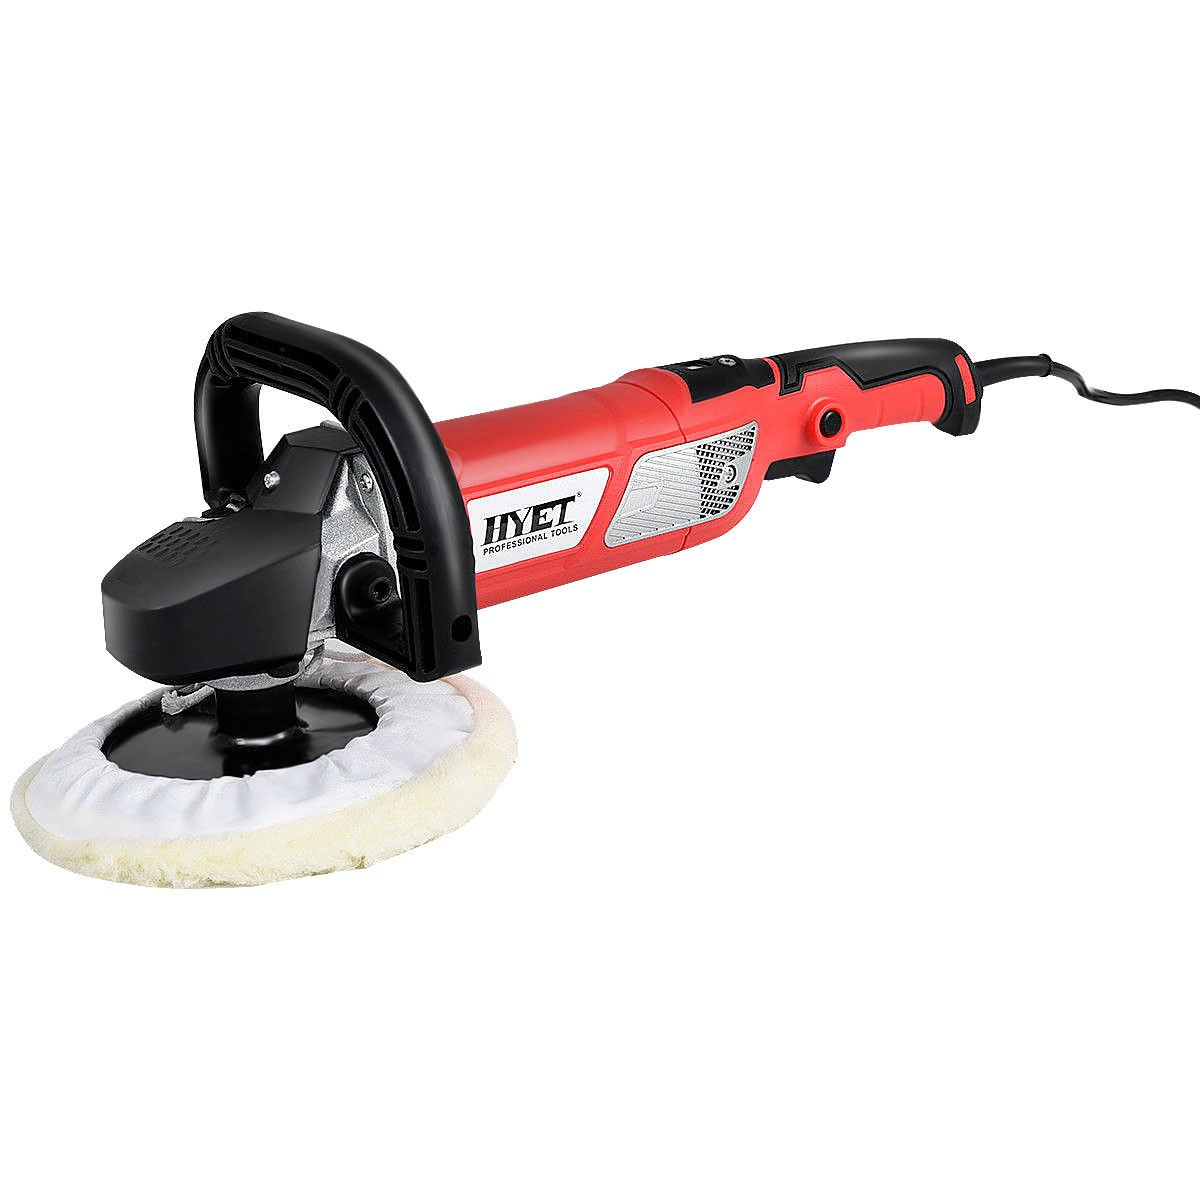 Goplus Electric Car Polisher Variable Speed 7-Inch Buffer Sander Detail Boat with Case